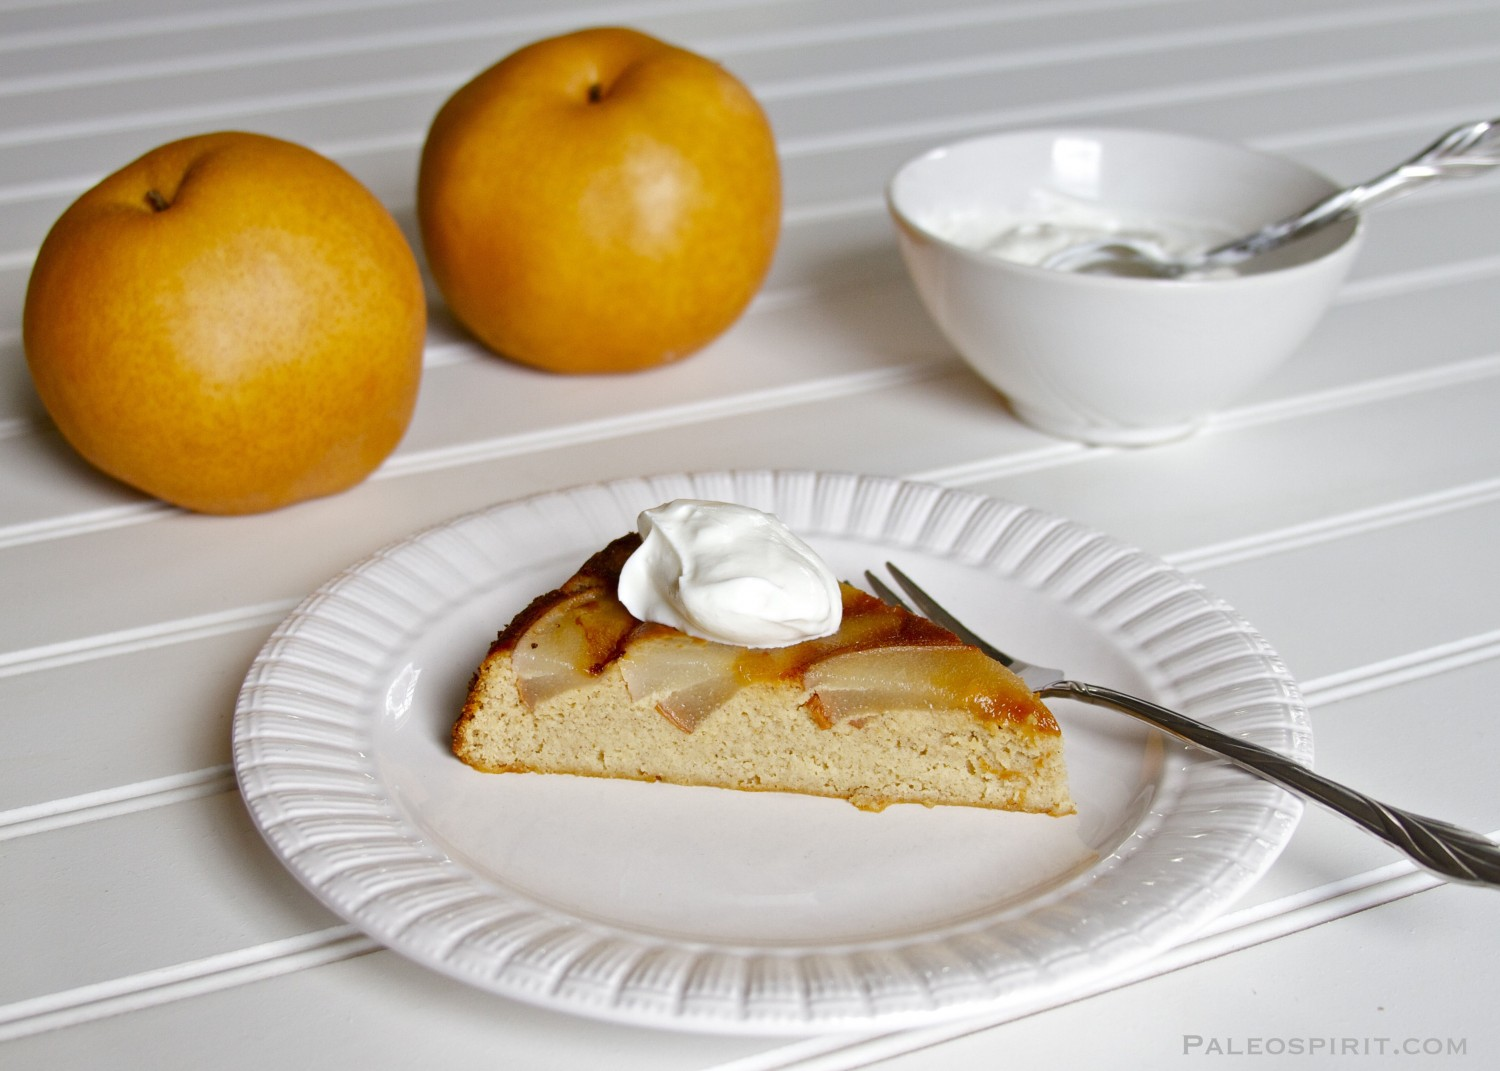 Korean Shingo Pear Flaugnarde (Clafoutis)